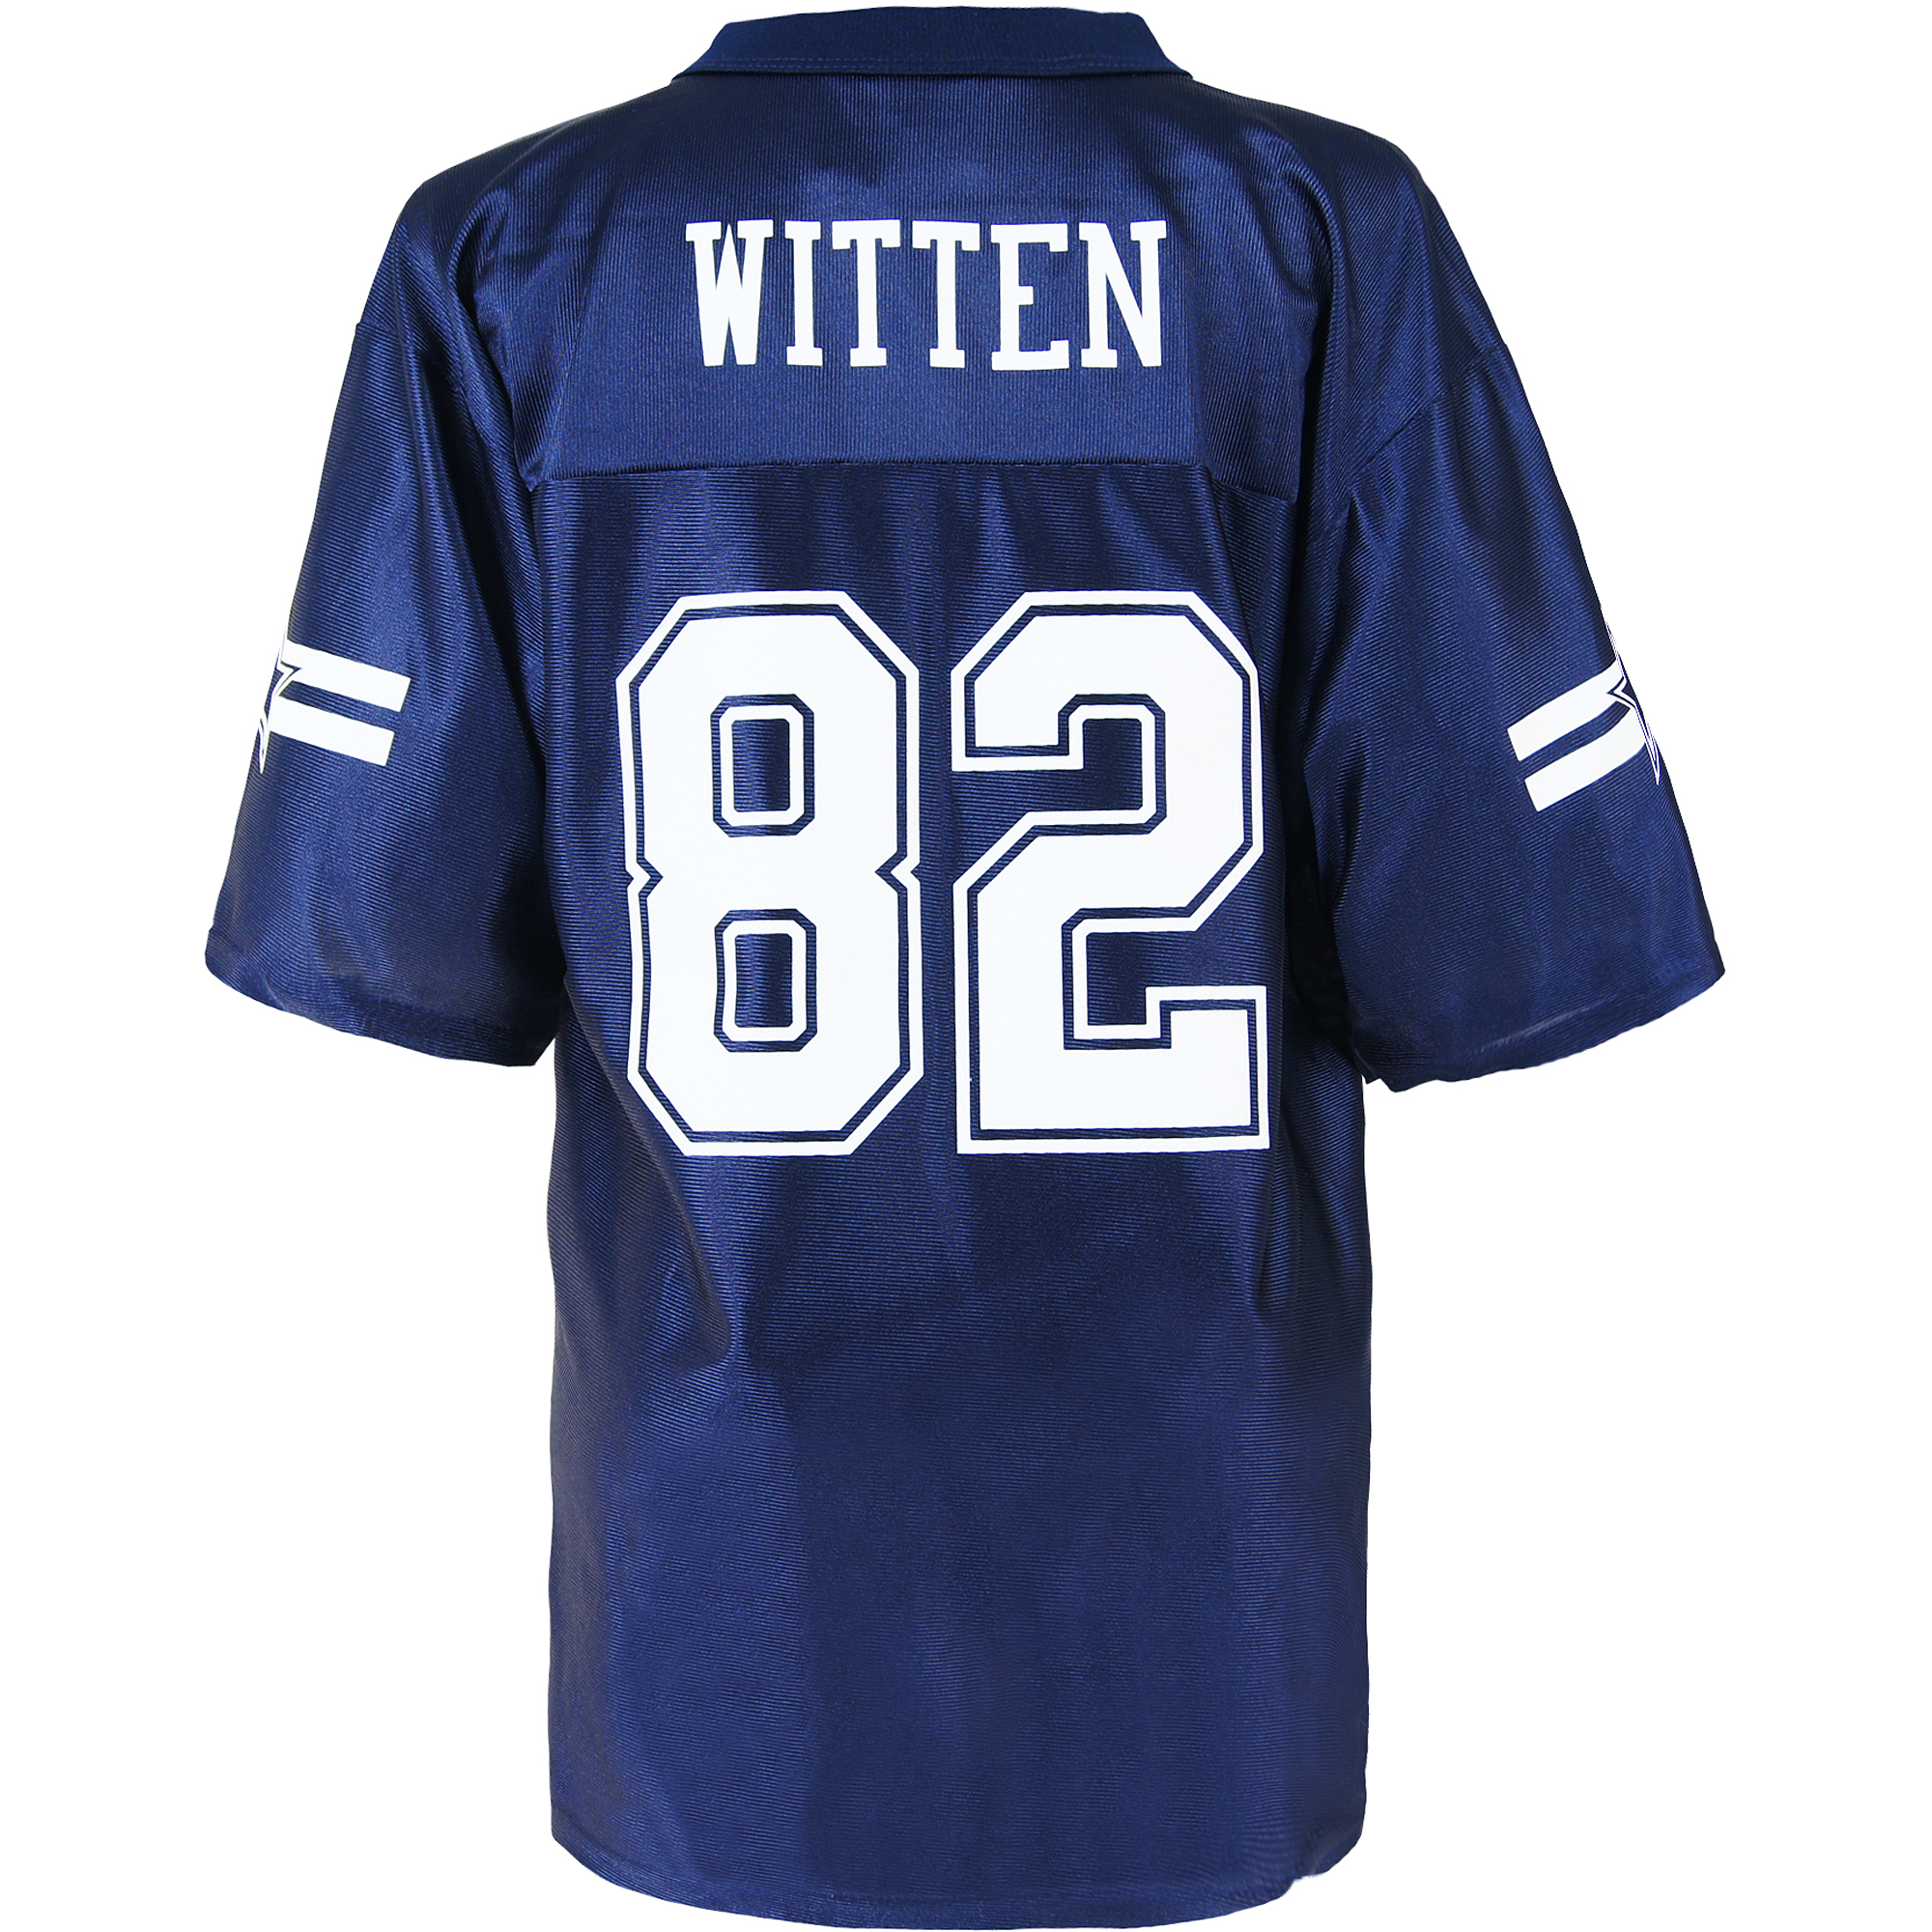 Nfl YOUTH Dallas Cowboys Jason Witten Jerseys Nike NFL